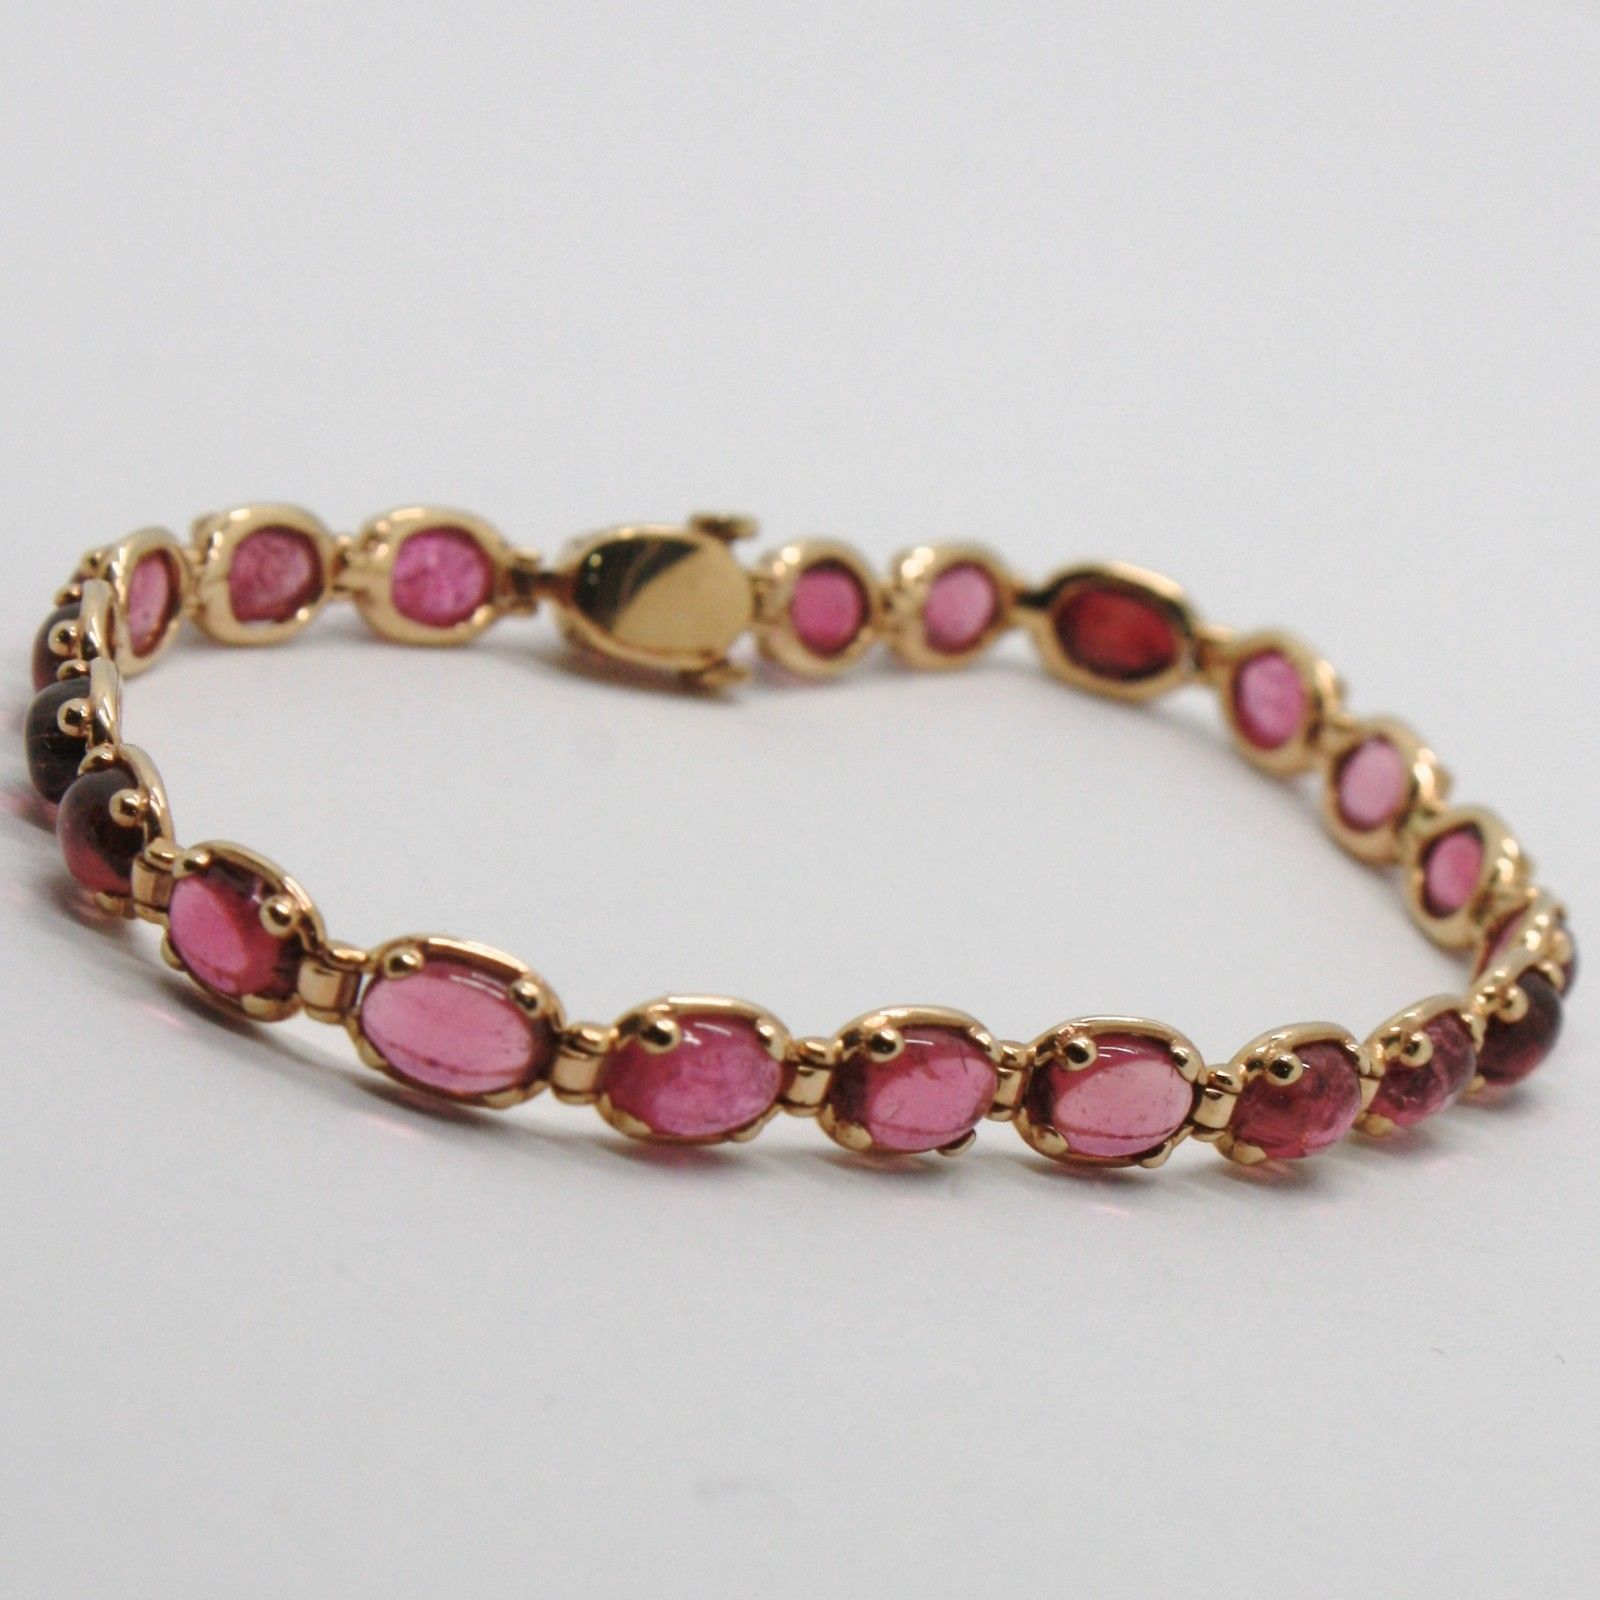 9K ROSE GOLD TENNIS BRACELET WITH CABOCHON PURPLE TOURMALINE, MADE IN ITALY